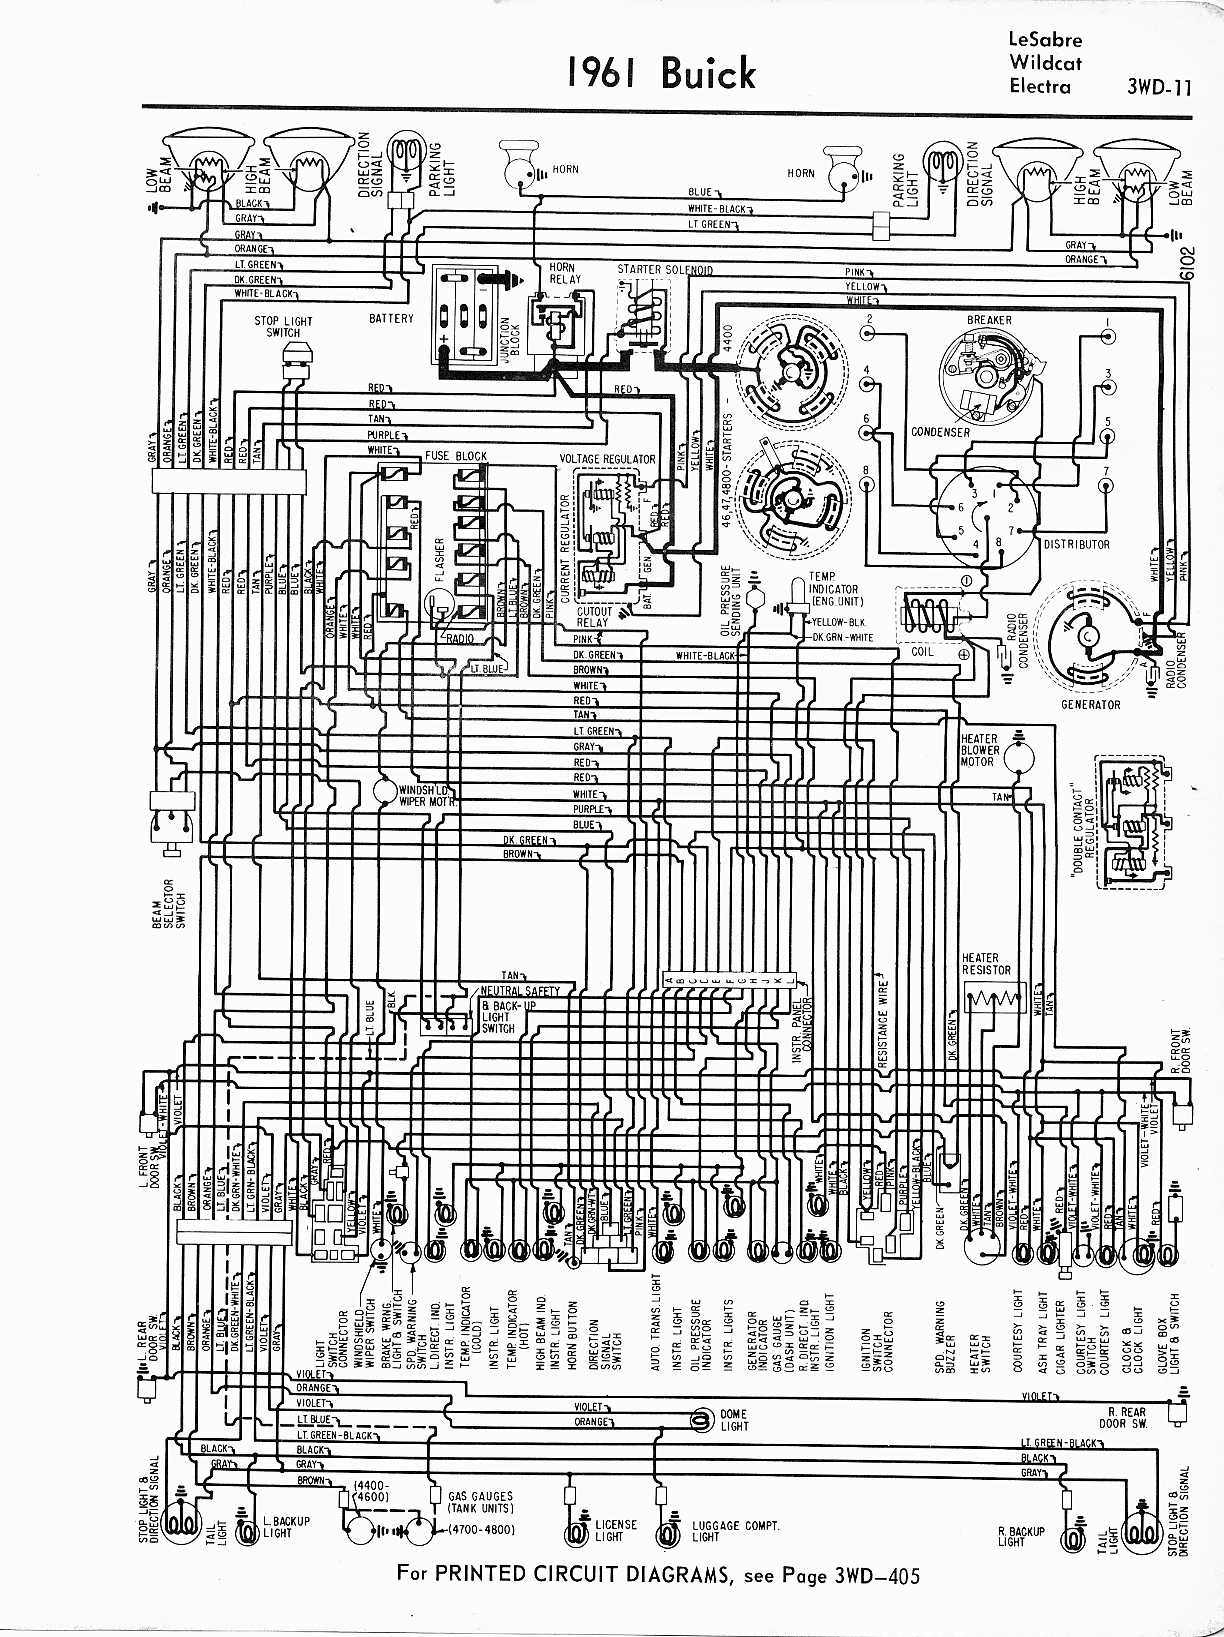 hight resolution of buick wiring diagrams 1957 19651961 lesabre wildcat electra